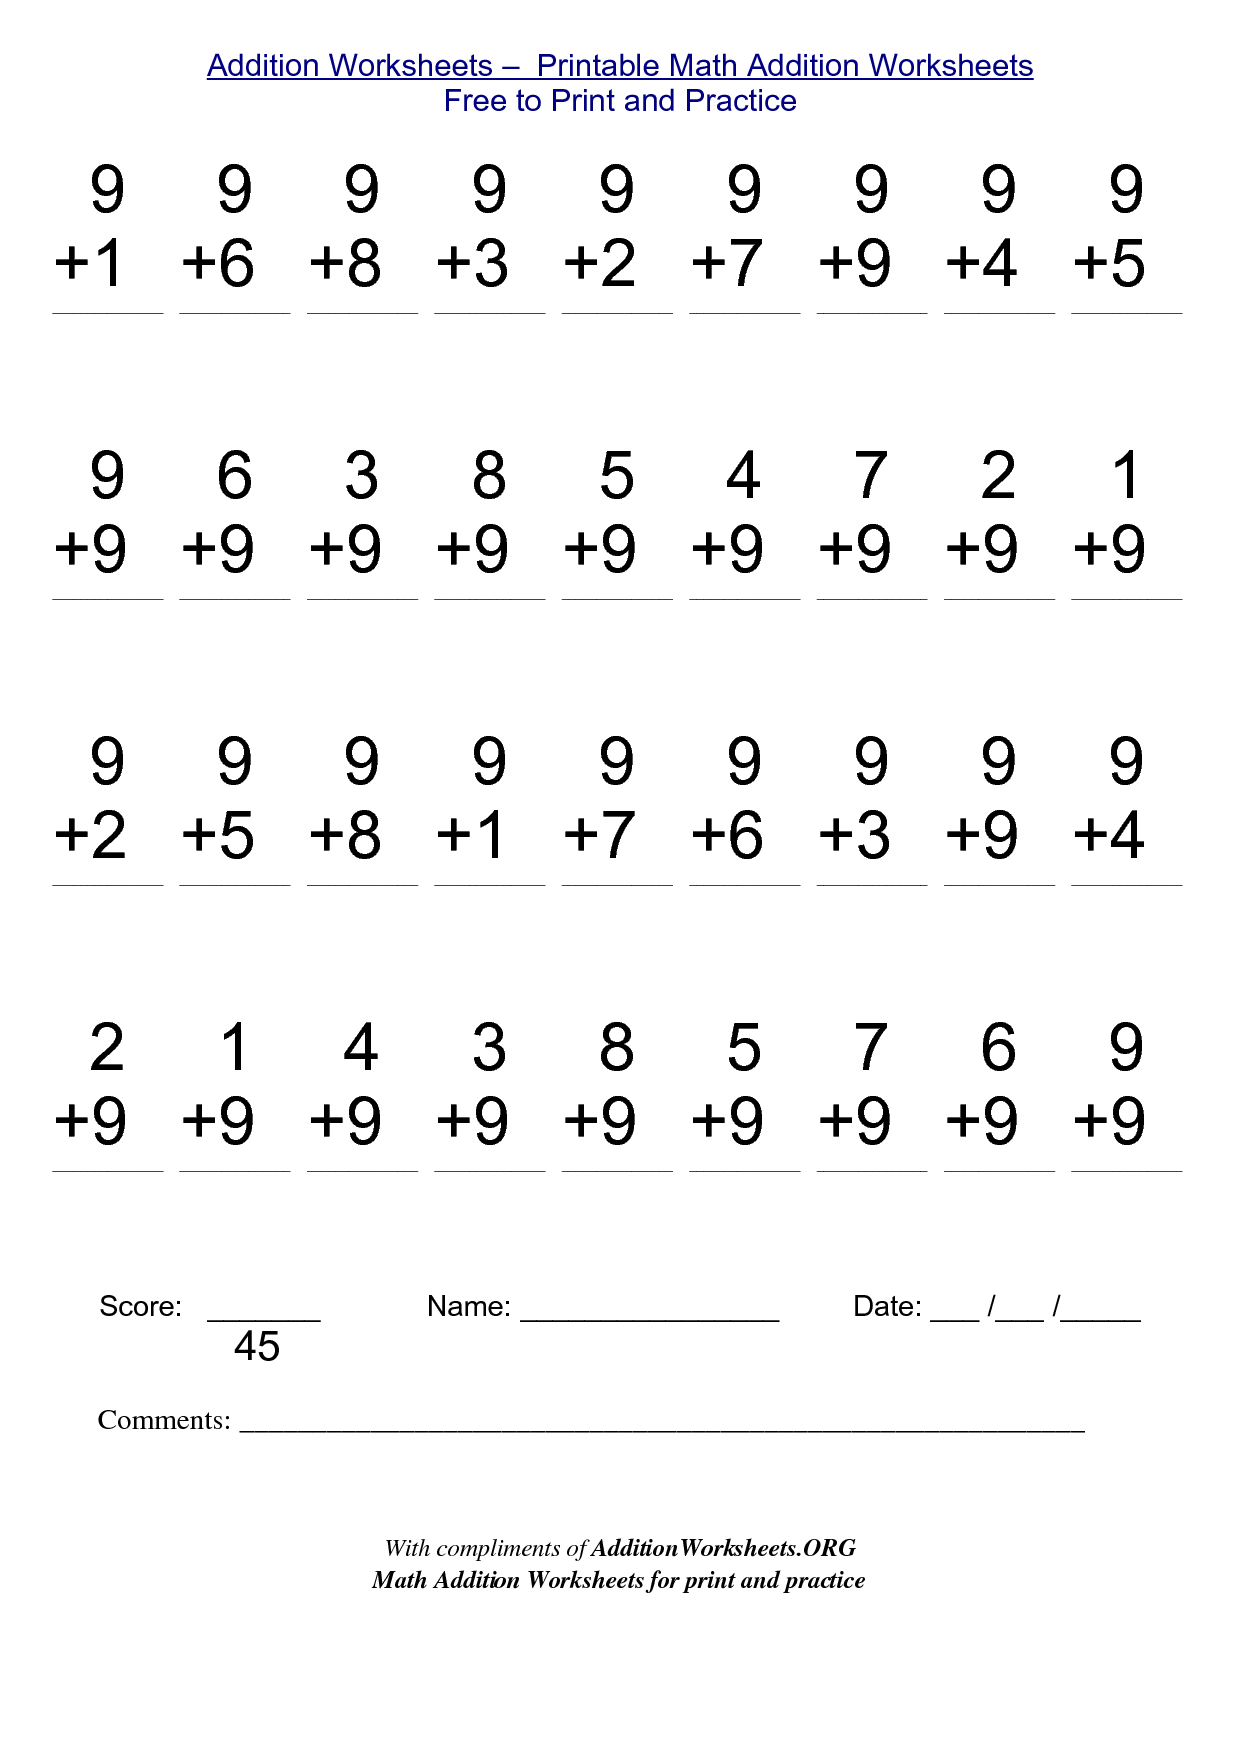 Uncategorized Math Worksheets Free Printable math worksheets for free to print alot com me pinterest addition printable print